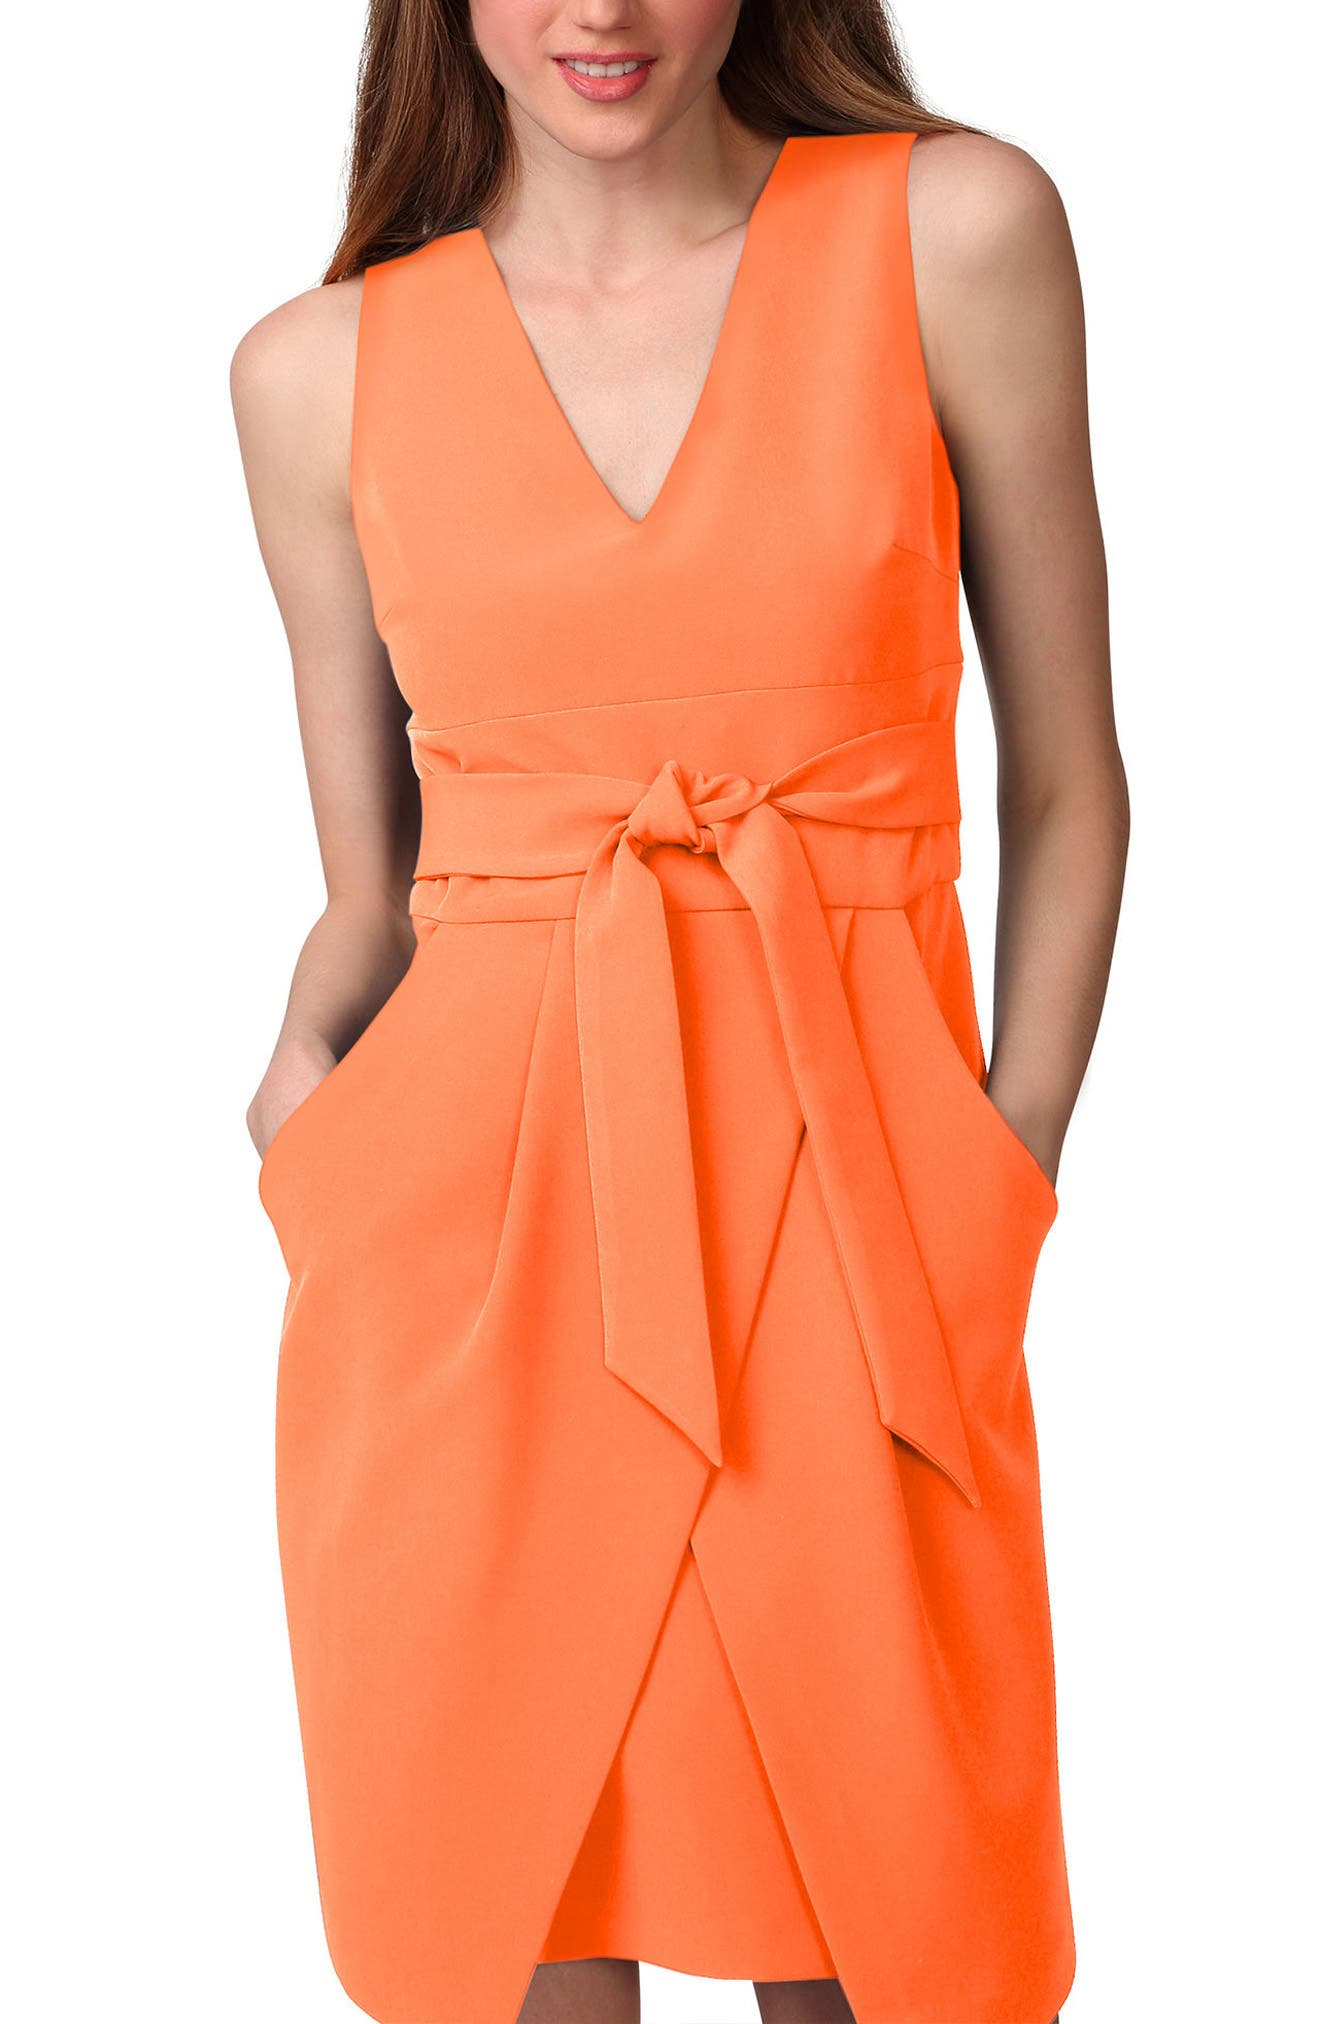 Alternate Image 1 Selected - Donna Morgan Tulip Hem Sleeveless Crepe Dress (Regular & Petite)